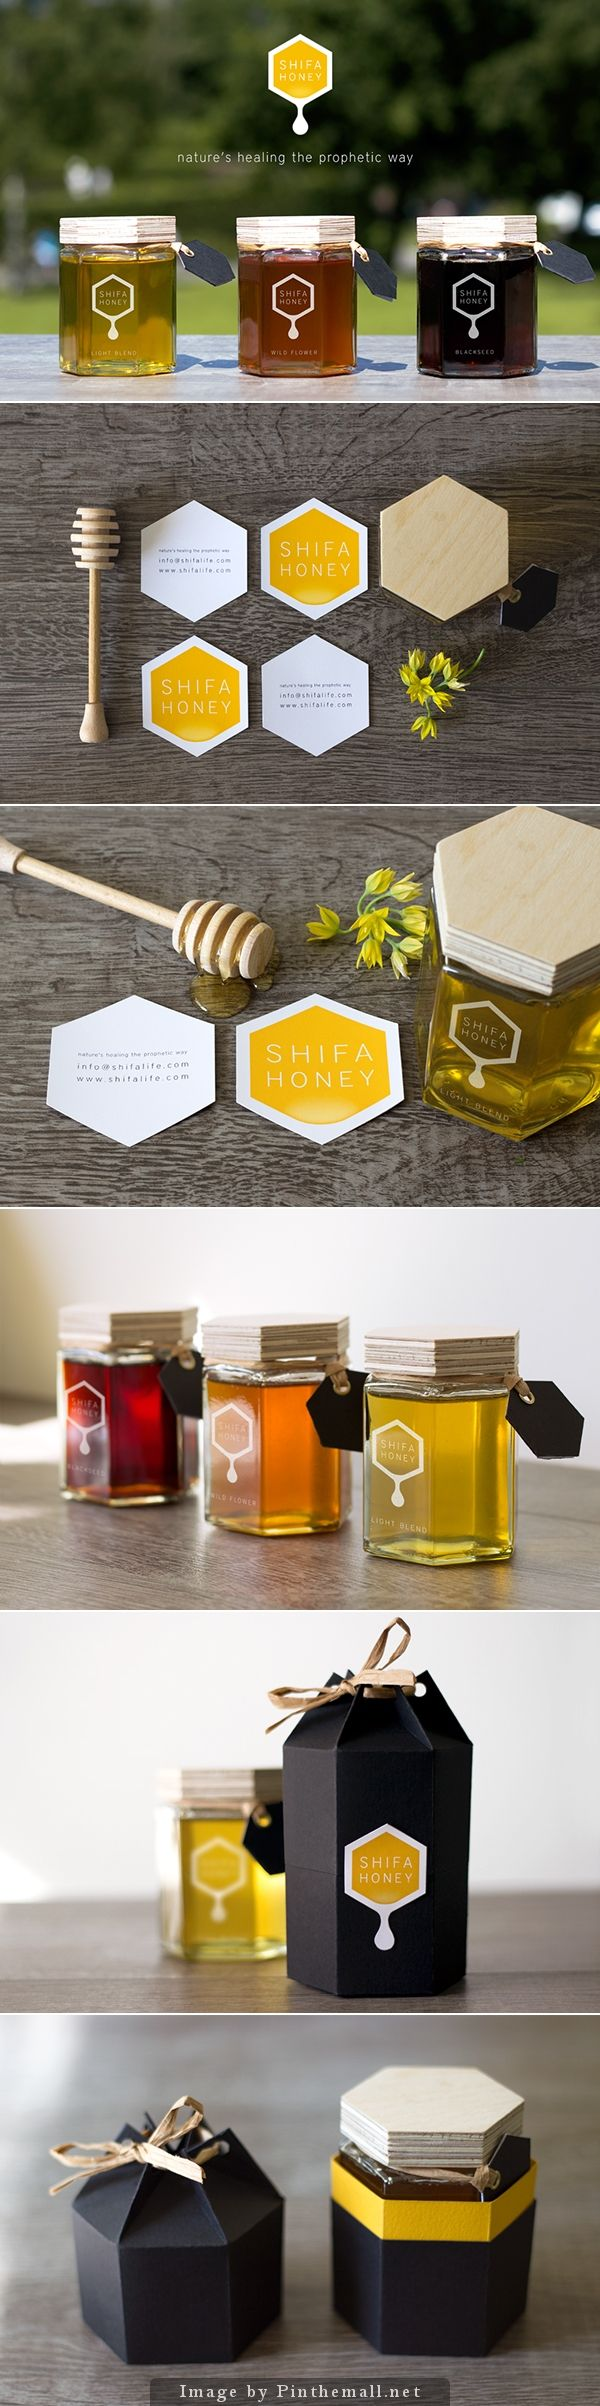 Shifa Honey packaging and logo design. I love the hexagon jars for honey packaging. It just makes sense.